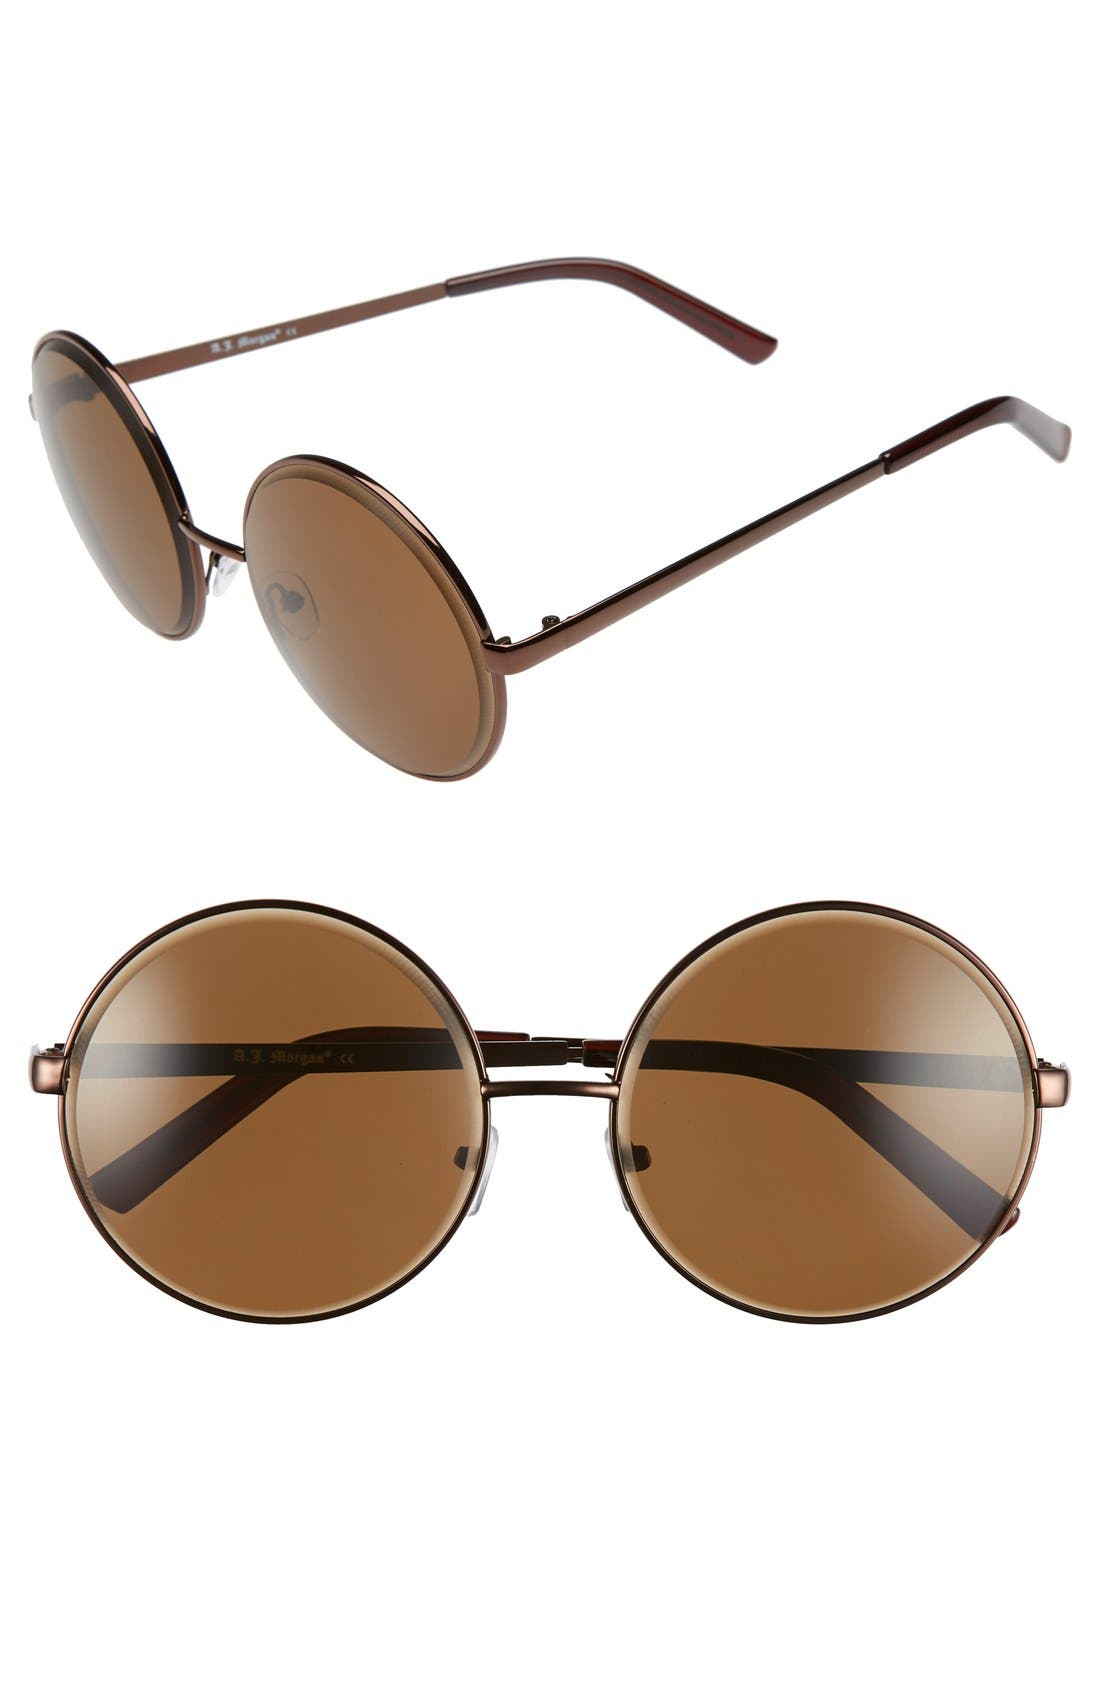 Alternate Image 1 Selected - A.J. Morgan 'Global' 60mm Oversize Round Sunglasses